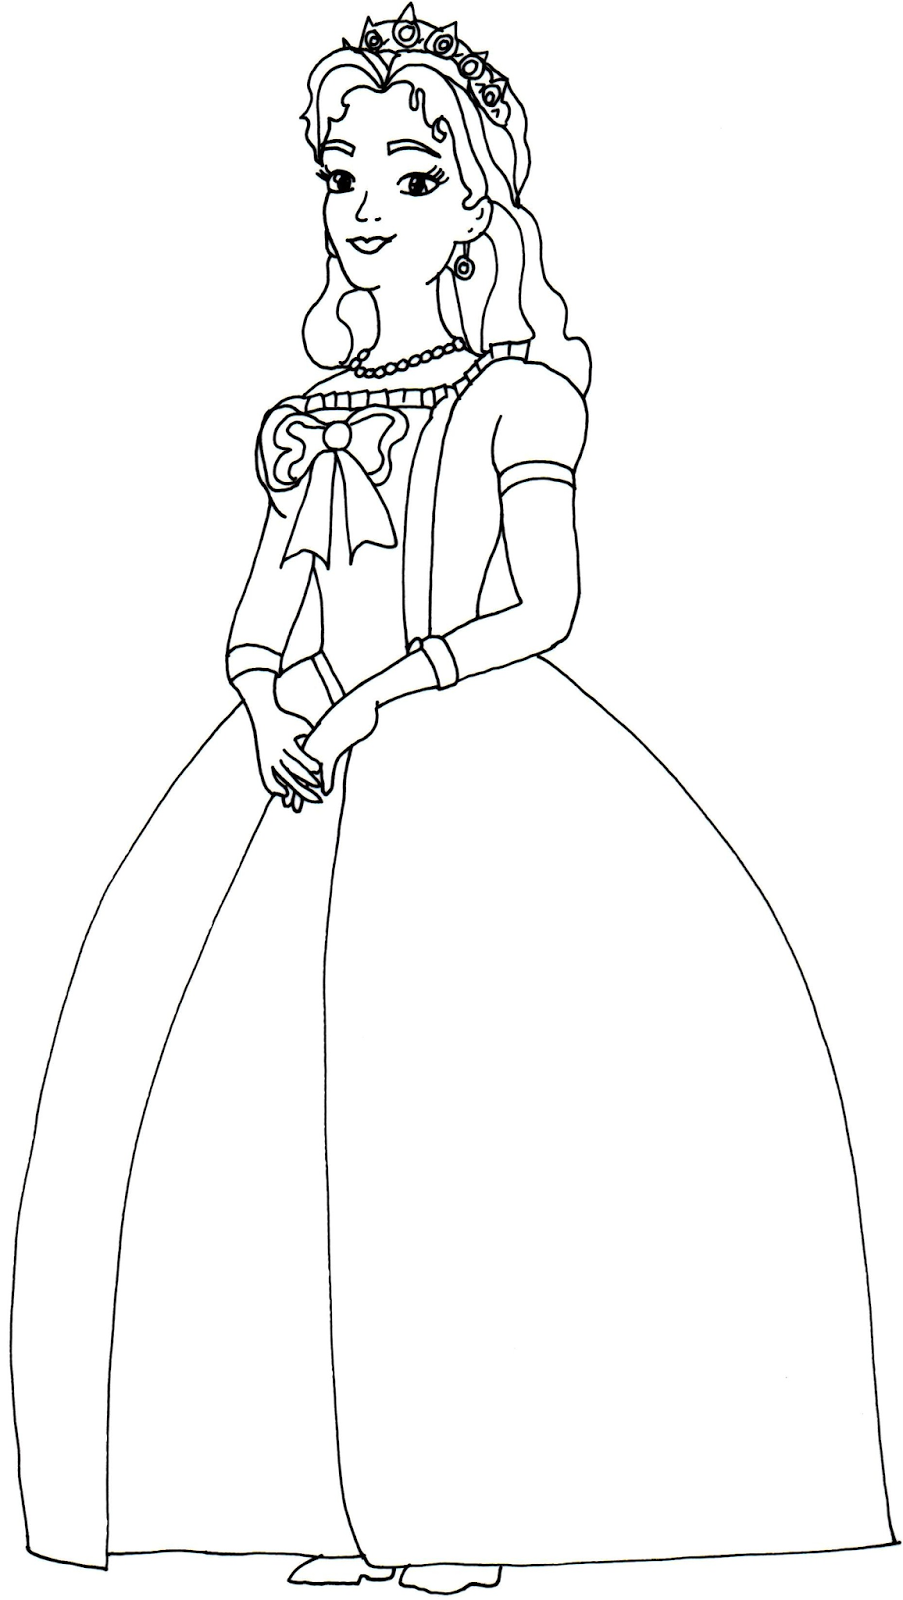 Grab Your New Coloring Pages Queen Free Https Gethighit Com New Coloring Pages Princess Coloring Pages Mom Coloring Pages Disney Coloring Pages Printables